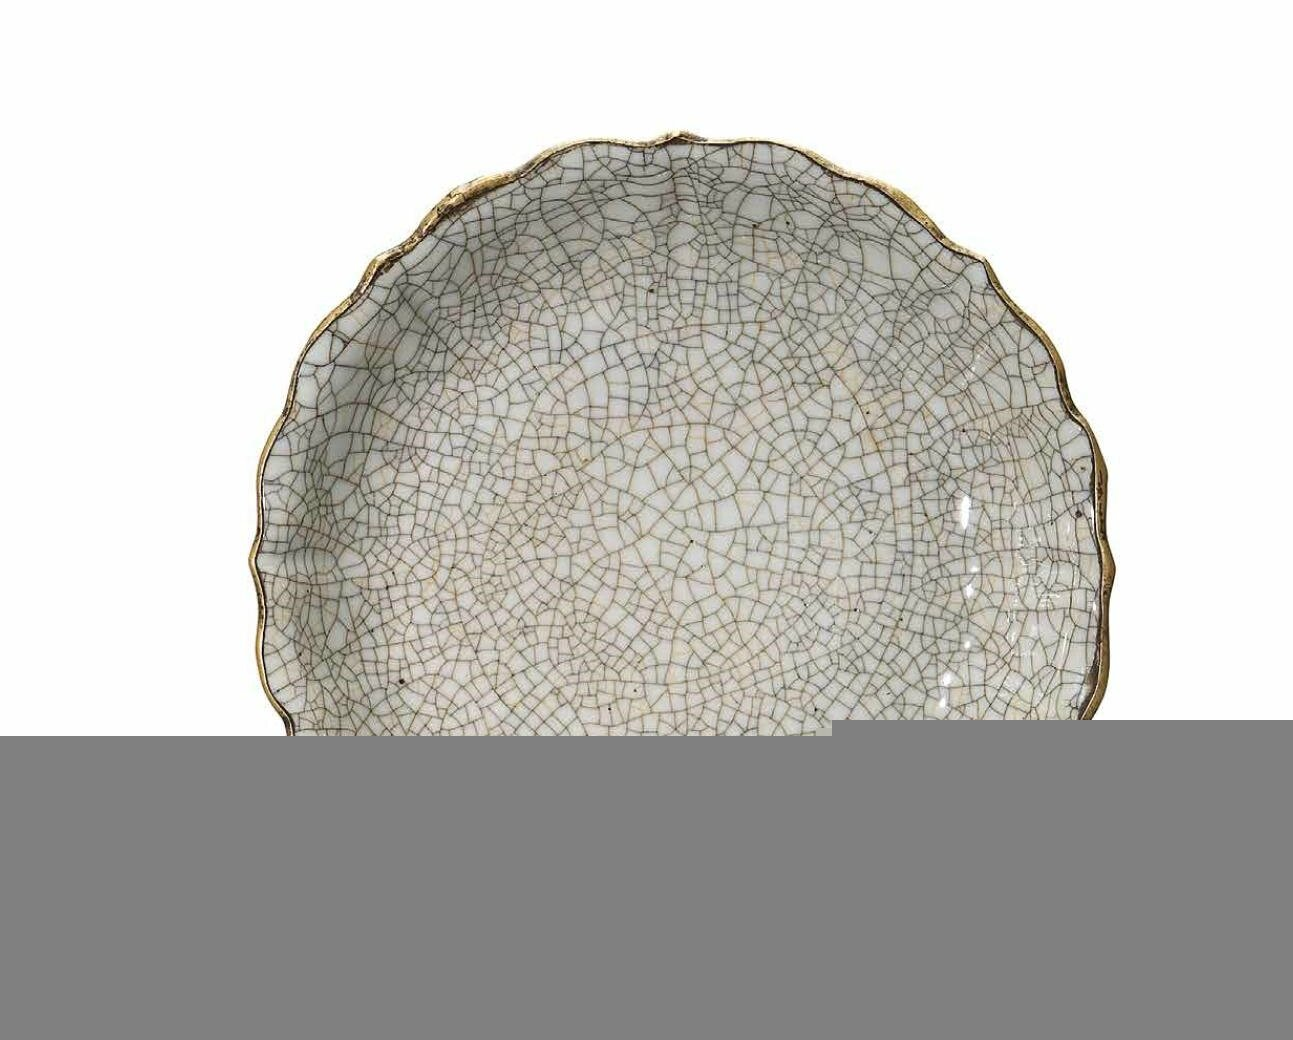 A Ge-type barbed-rim dish, Ming dynasty, 15th century